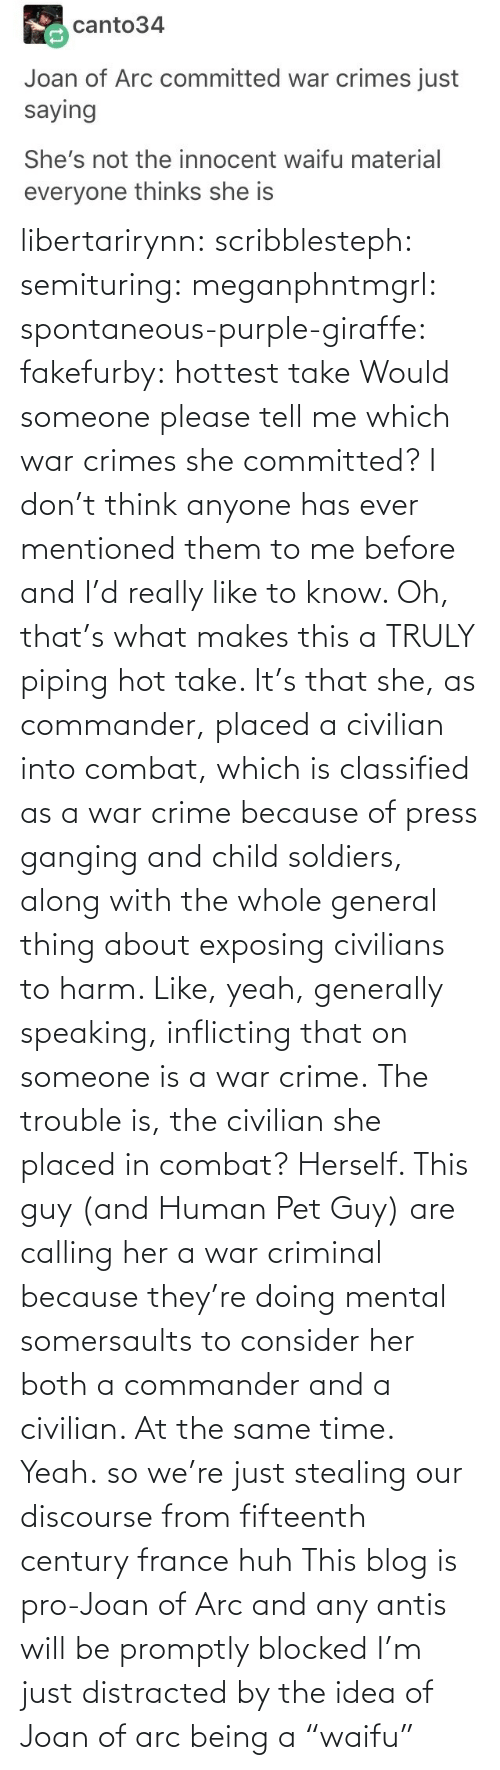 "same: libertarirynn: scribblesteph:  semituring:  meganphntmgrl:  spontaneous-purple-giraffe:   fakefurby: hottest take  Would someone please tell me which war crimes she committed? I don't think anyone has ever mentioned them to me before and I'd really like to know.    Oh, that's what makes this a TRULY piping hot take. It's that she, as commander, placed a civilian into combat, which is classified as a war crime because of press ganging and child soldiers, along with the whole general thing about exposing civilians to harm. Like, yeah, generally speaking, inflicting that on someone is a war crime. The trouble is, the civilian she placed in combat? Herself.  This guy (and Human Pet Guy) are calling her a war criminal because they're doing mental somersaults to consider her both a commander and a civilian. At the same time.  Yeah.  so we're just stealing our discourse from fifteenth century france huh   This blog is pro-Joan of Arc and any antis will be promptly blocked   I'm just distracted by the idea of Joan of arc being a ""waifu"""